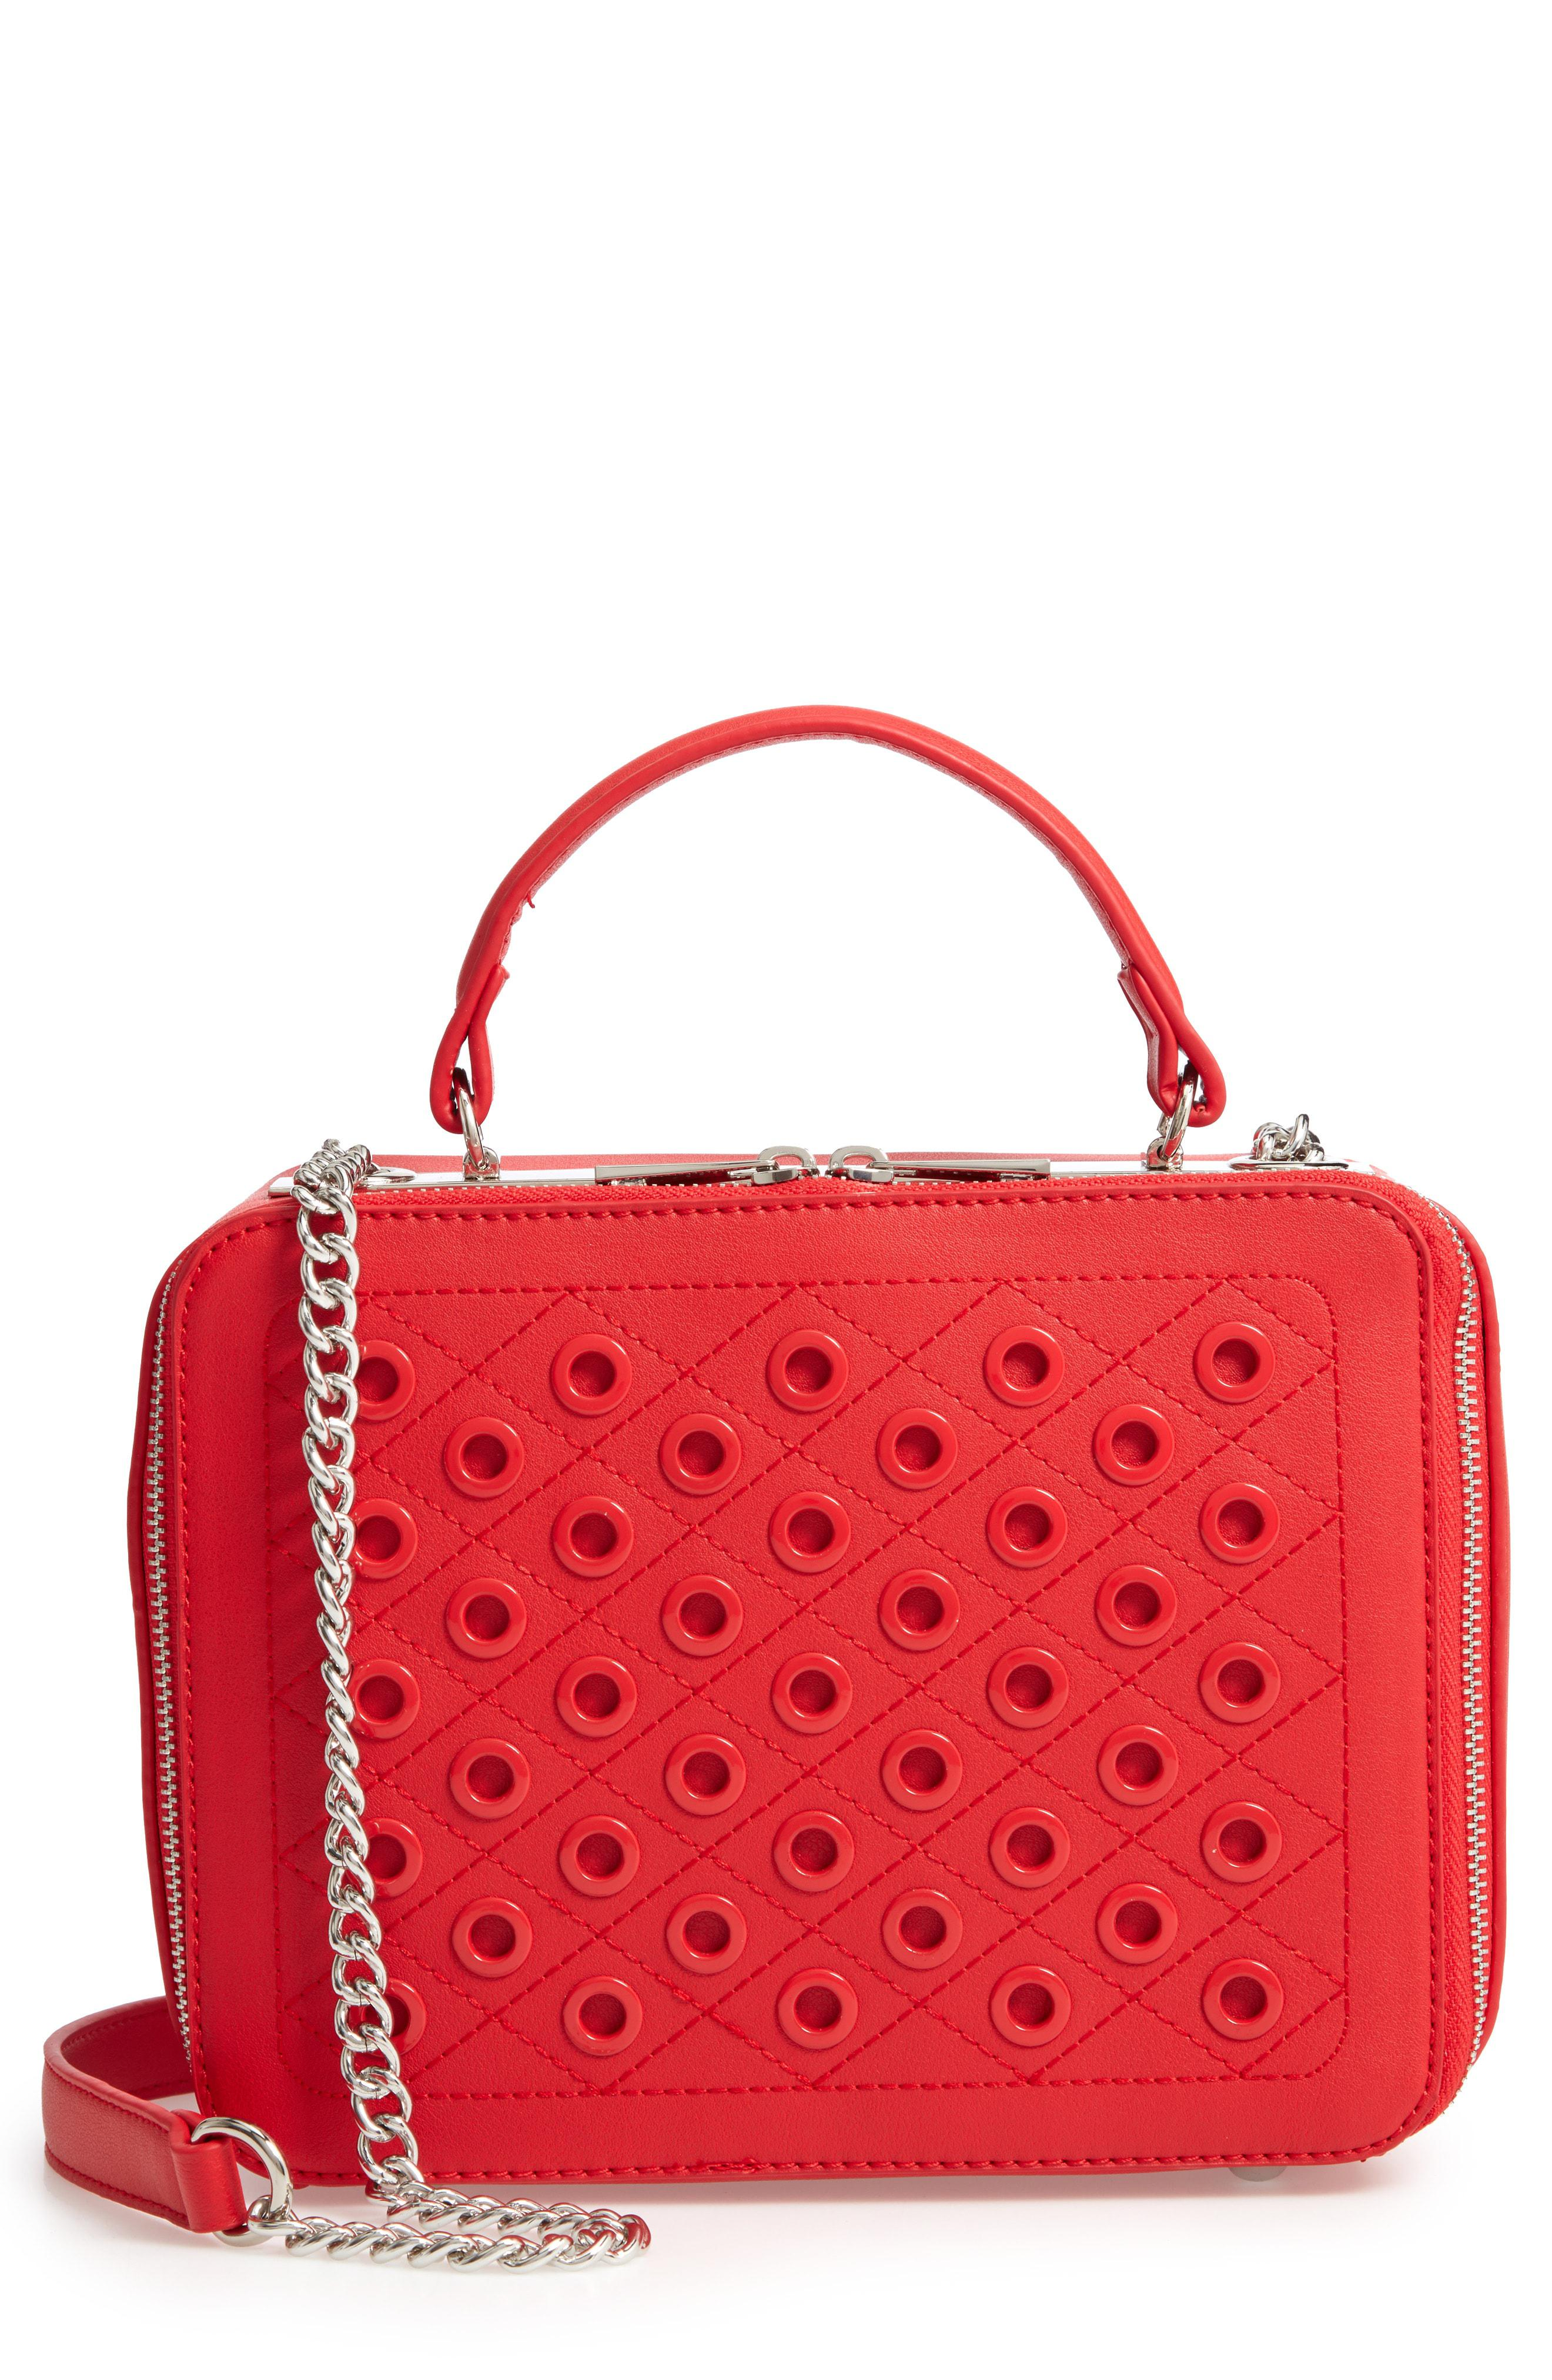 28f053ea74 BP. Grommet Detail Faux Leather Crossbody Bag in Red - Lyst